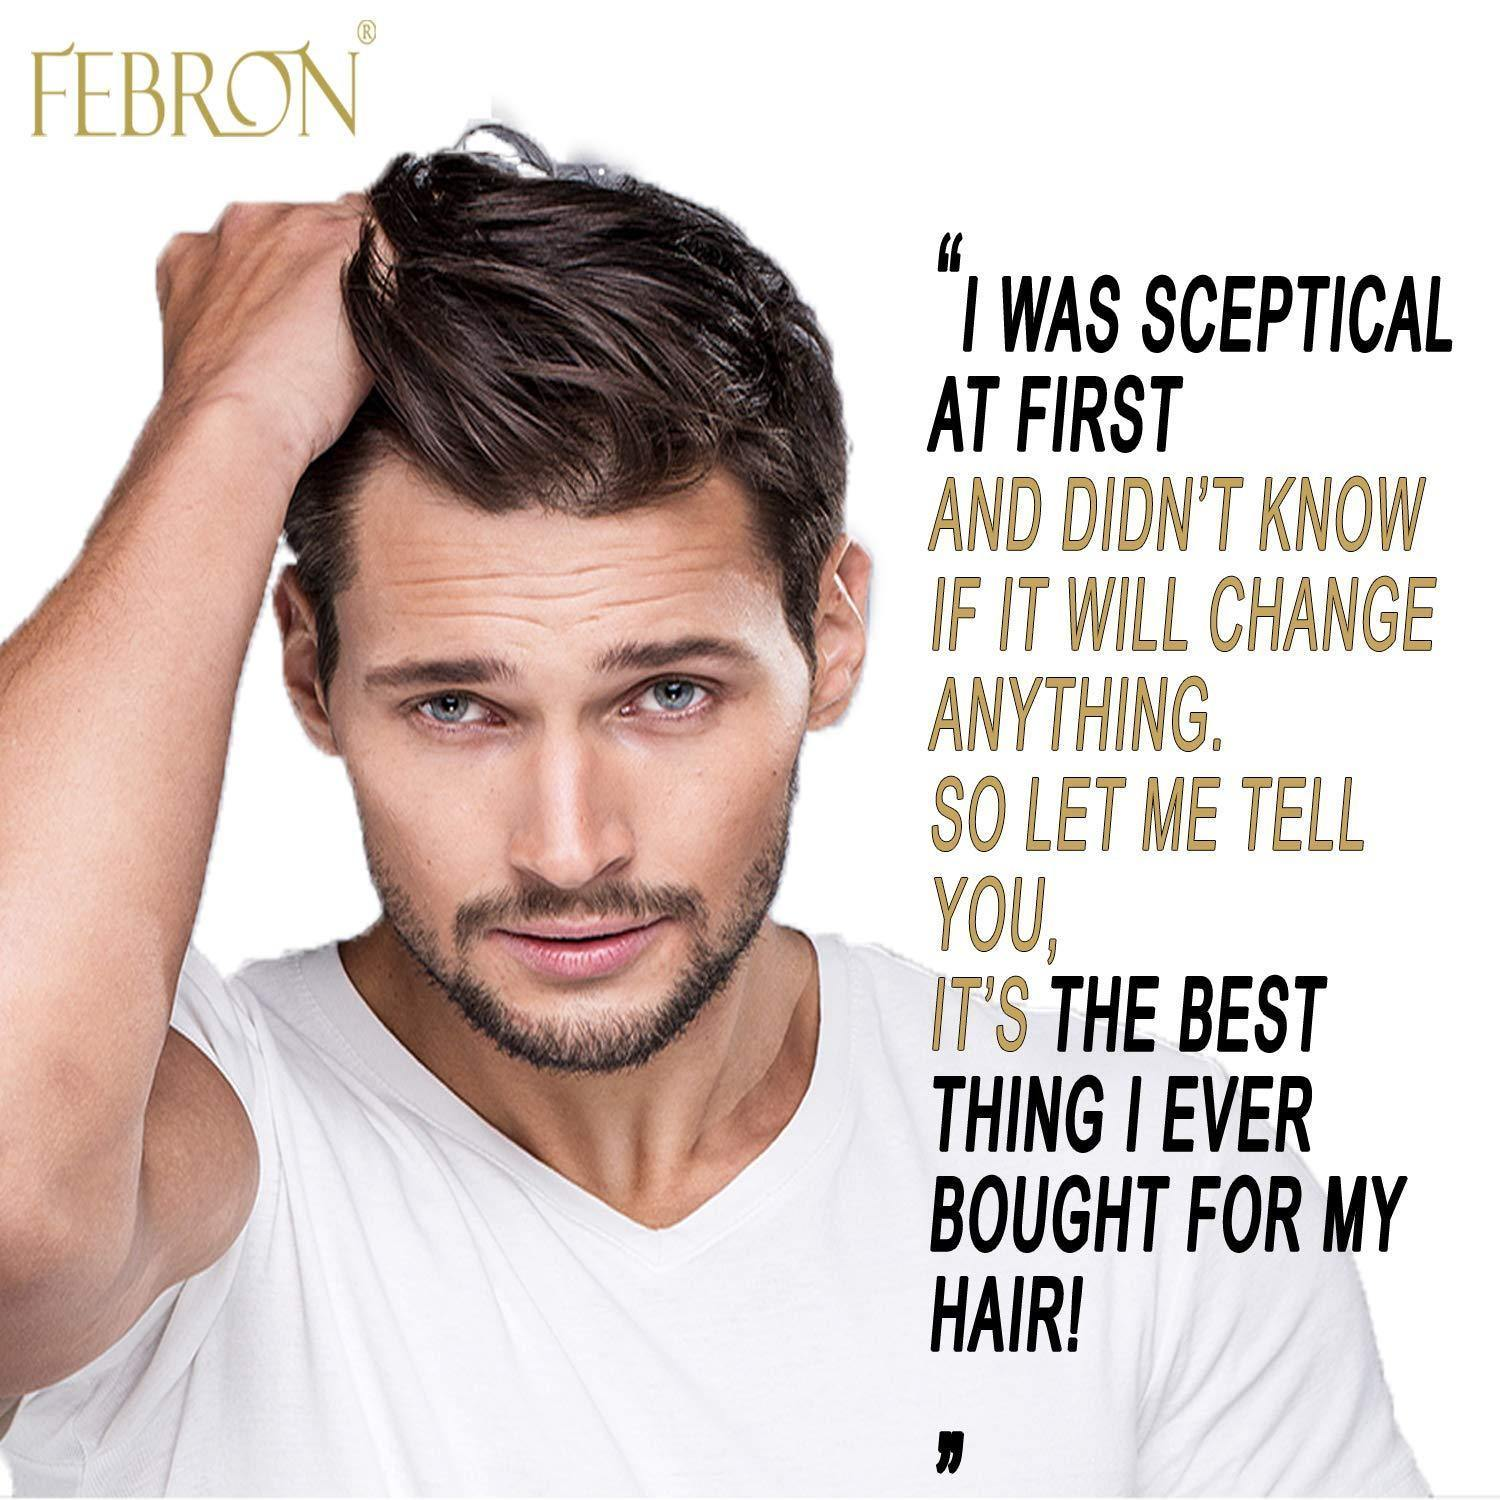 Febron 3 IN 1 Hair Loss Capsules Pack For Healthier Stronger Follicles